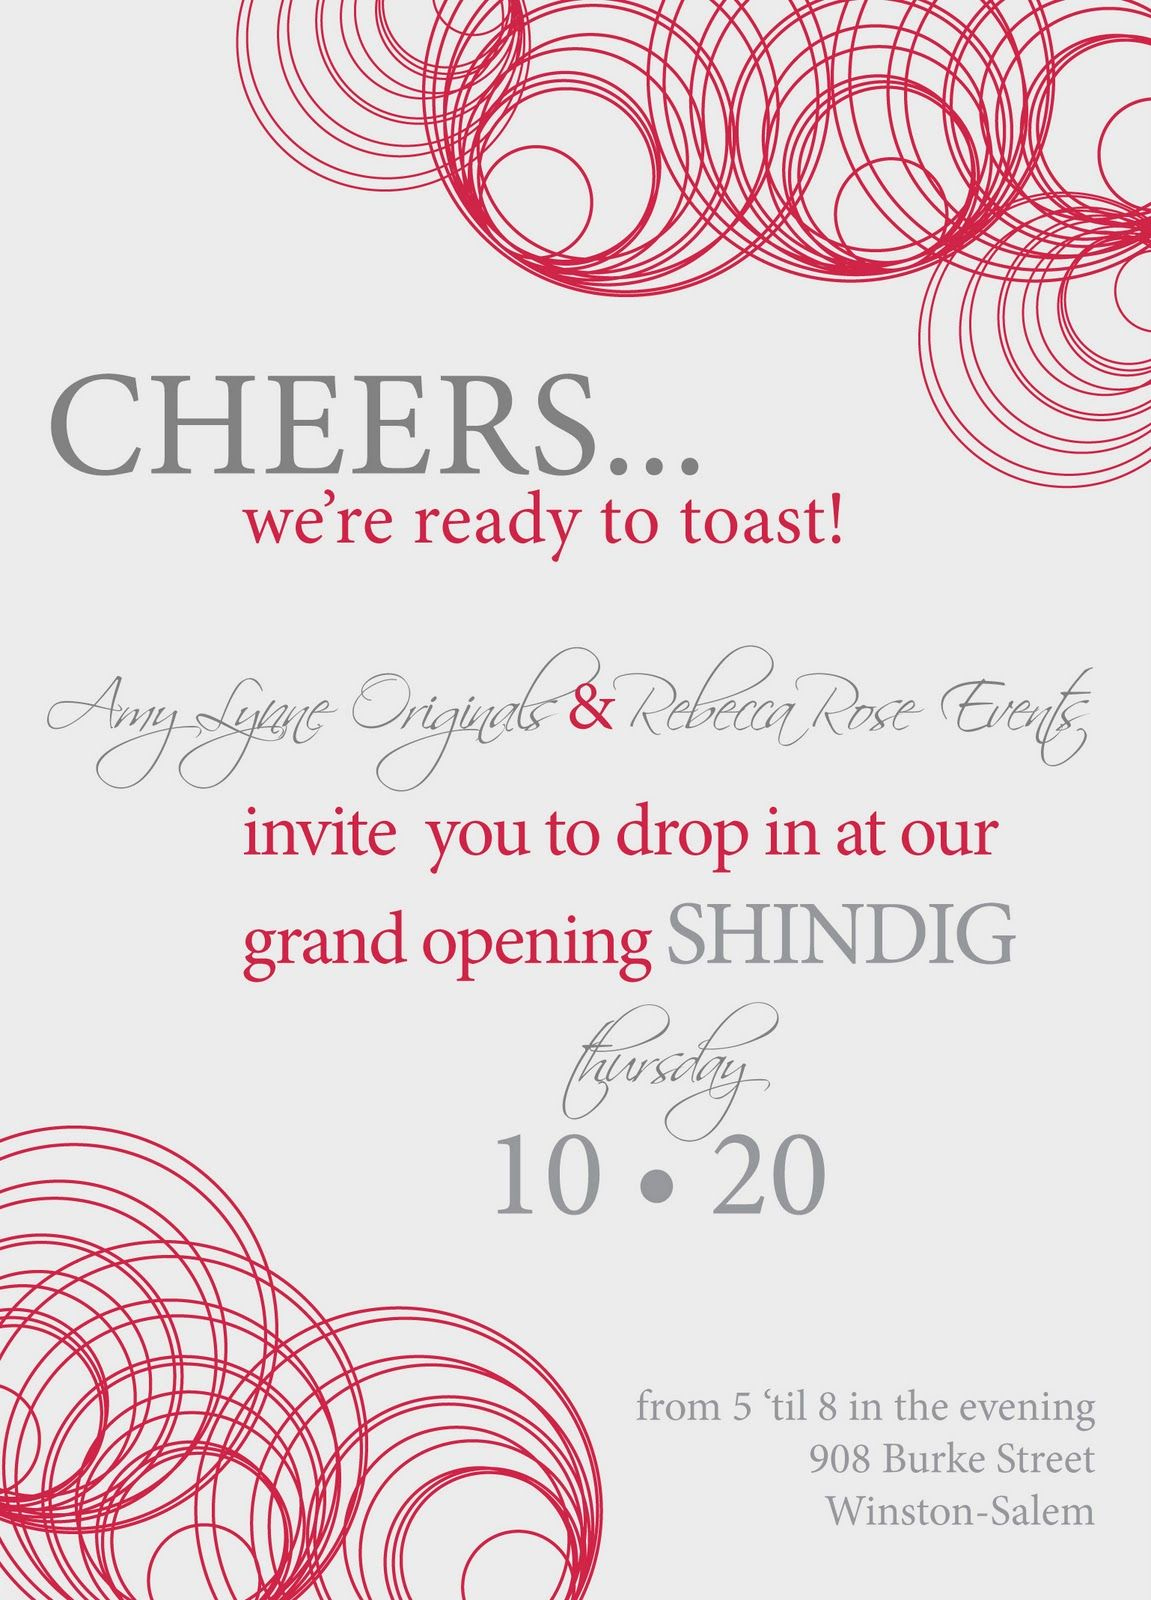 Grand Opening Invitation Wording Awesome Wording for Renovation Open House Invitations Google